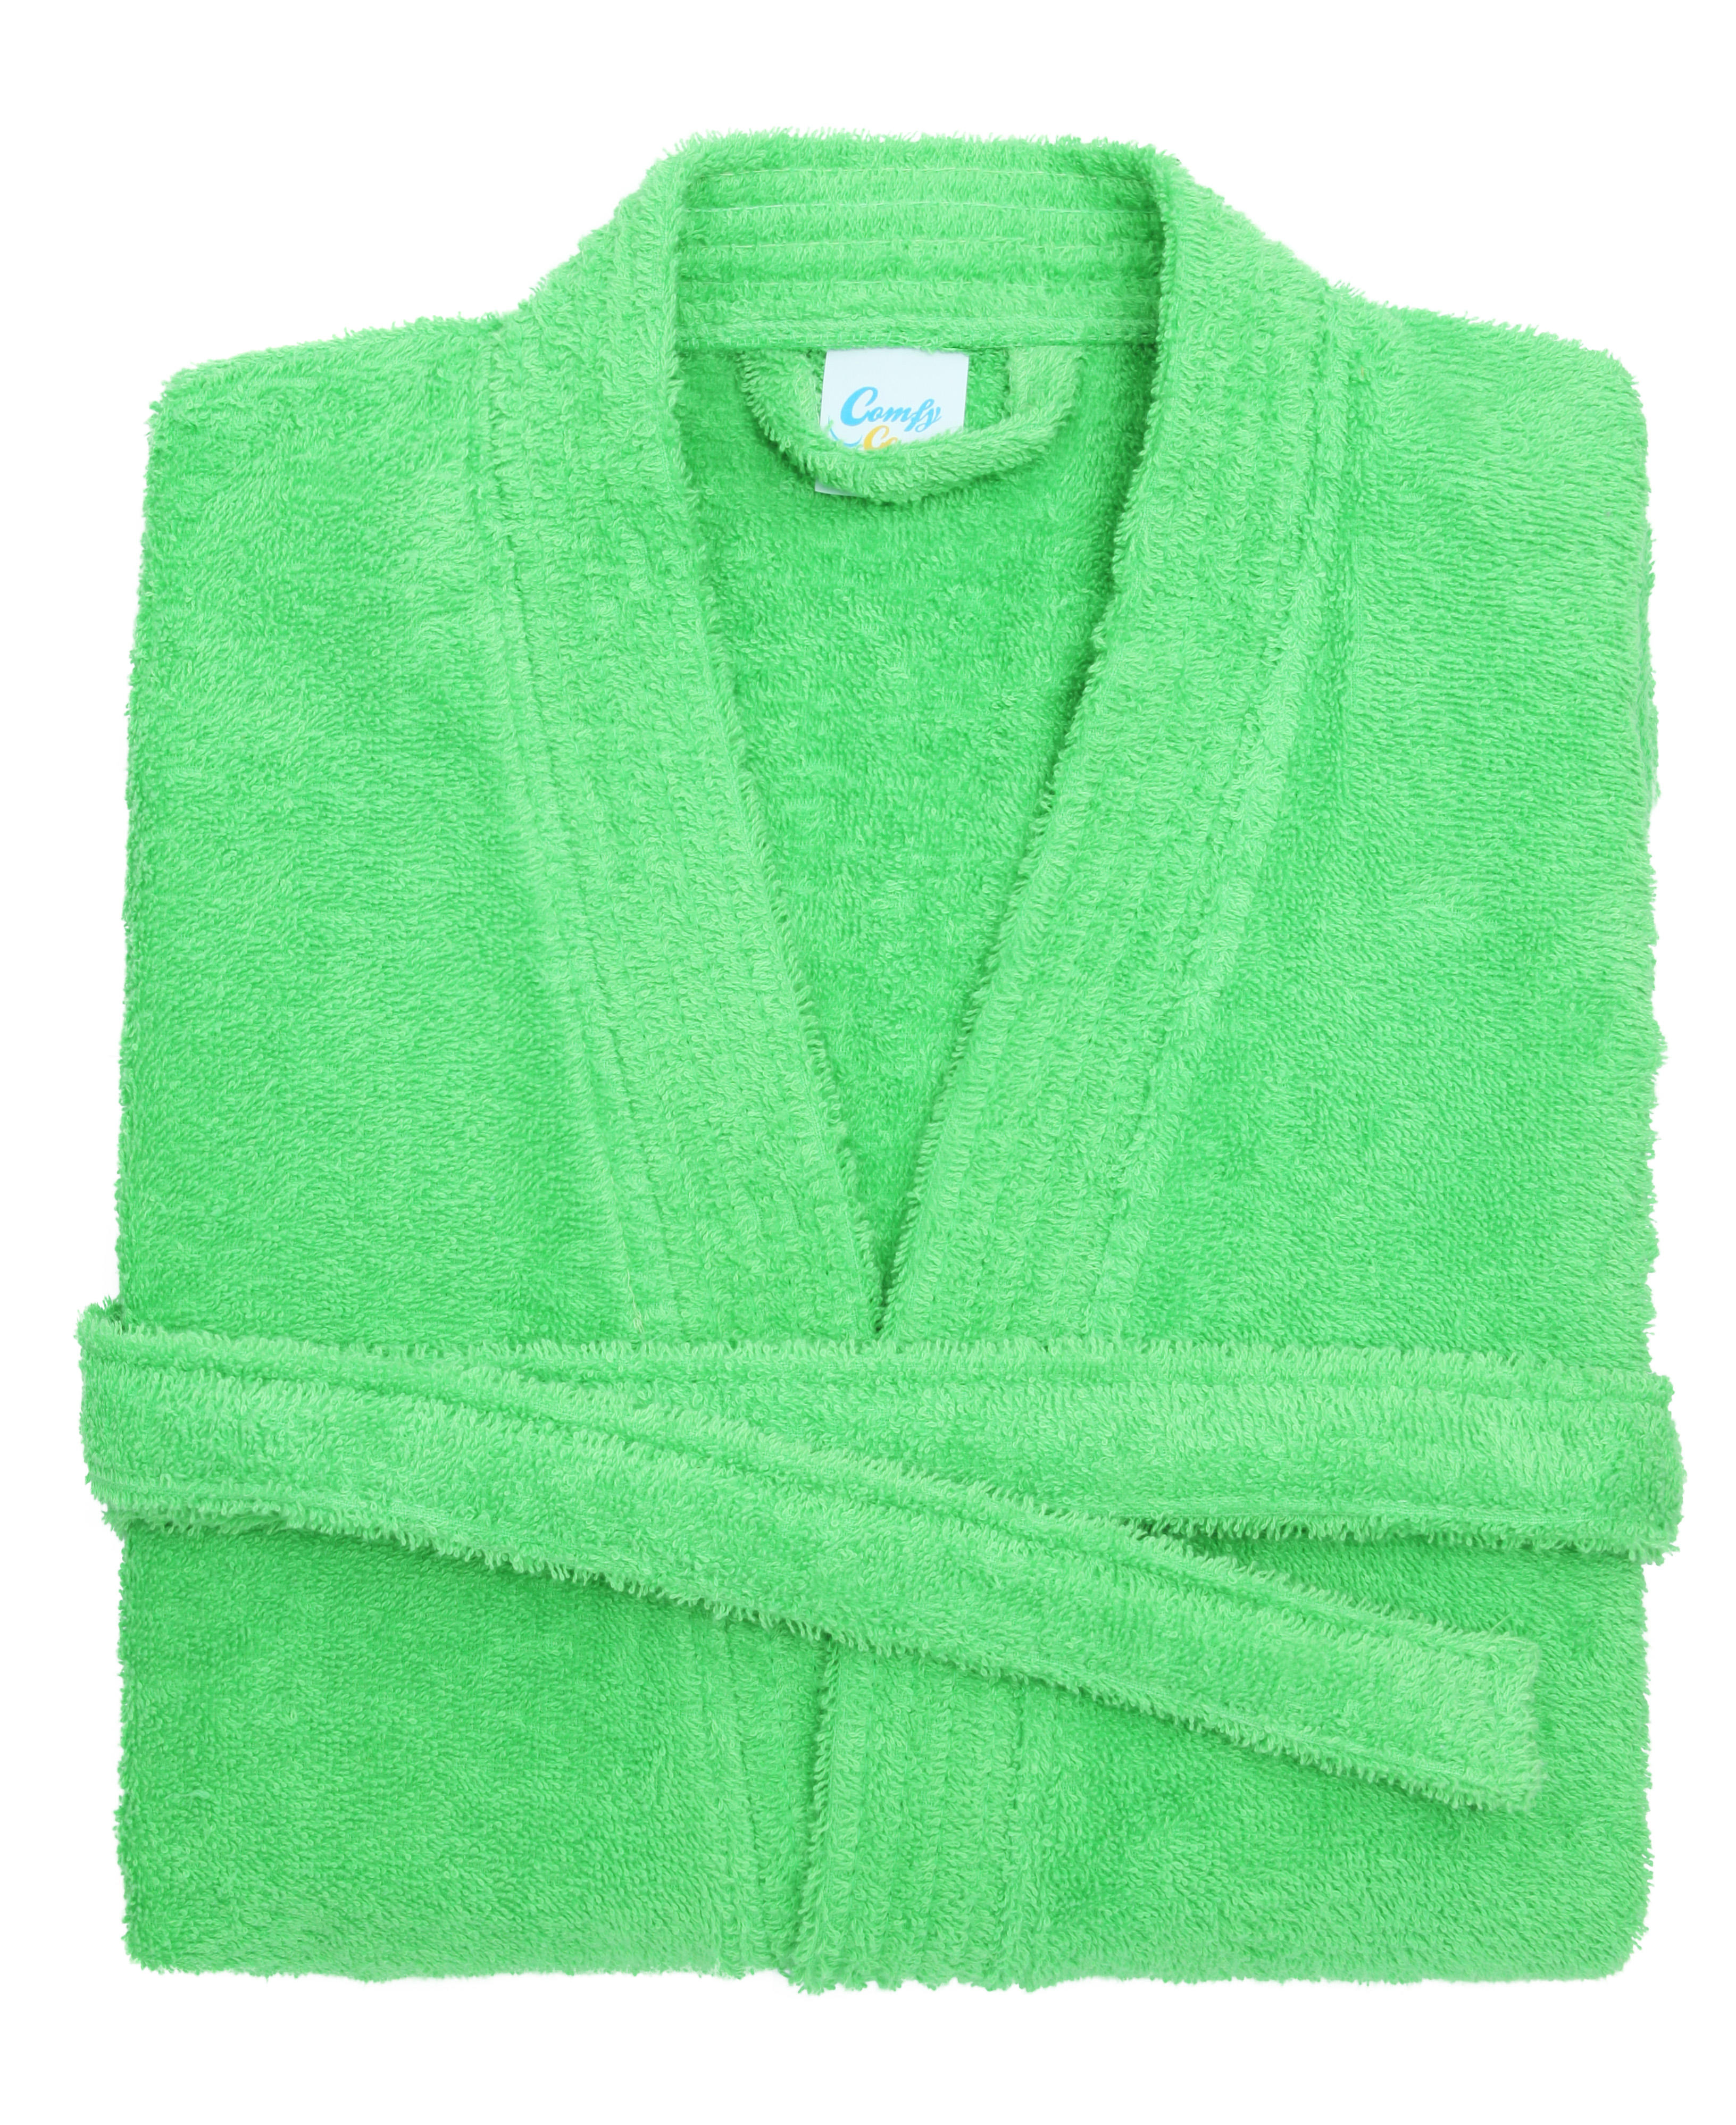 lime green cotton towelling bath robe